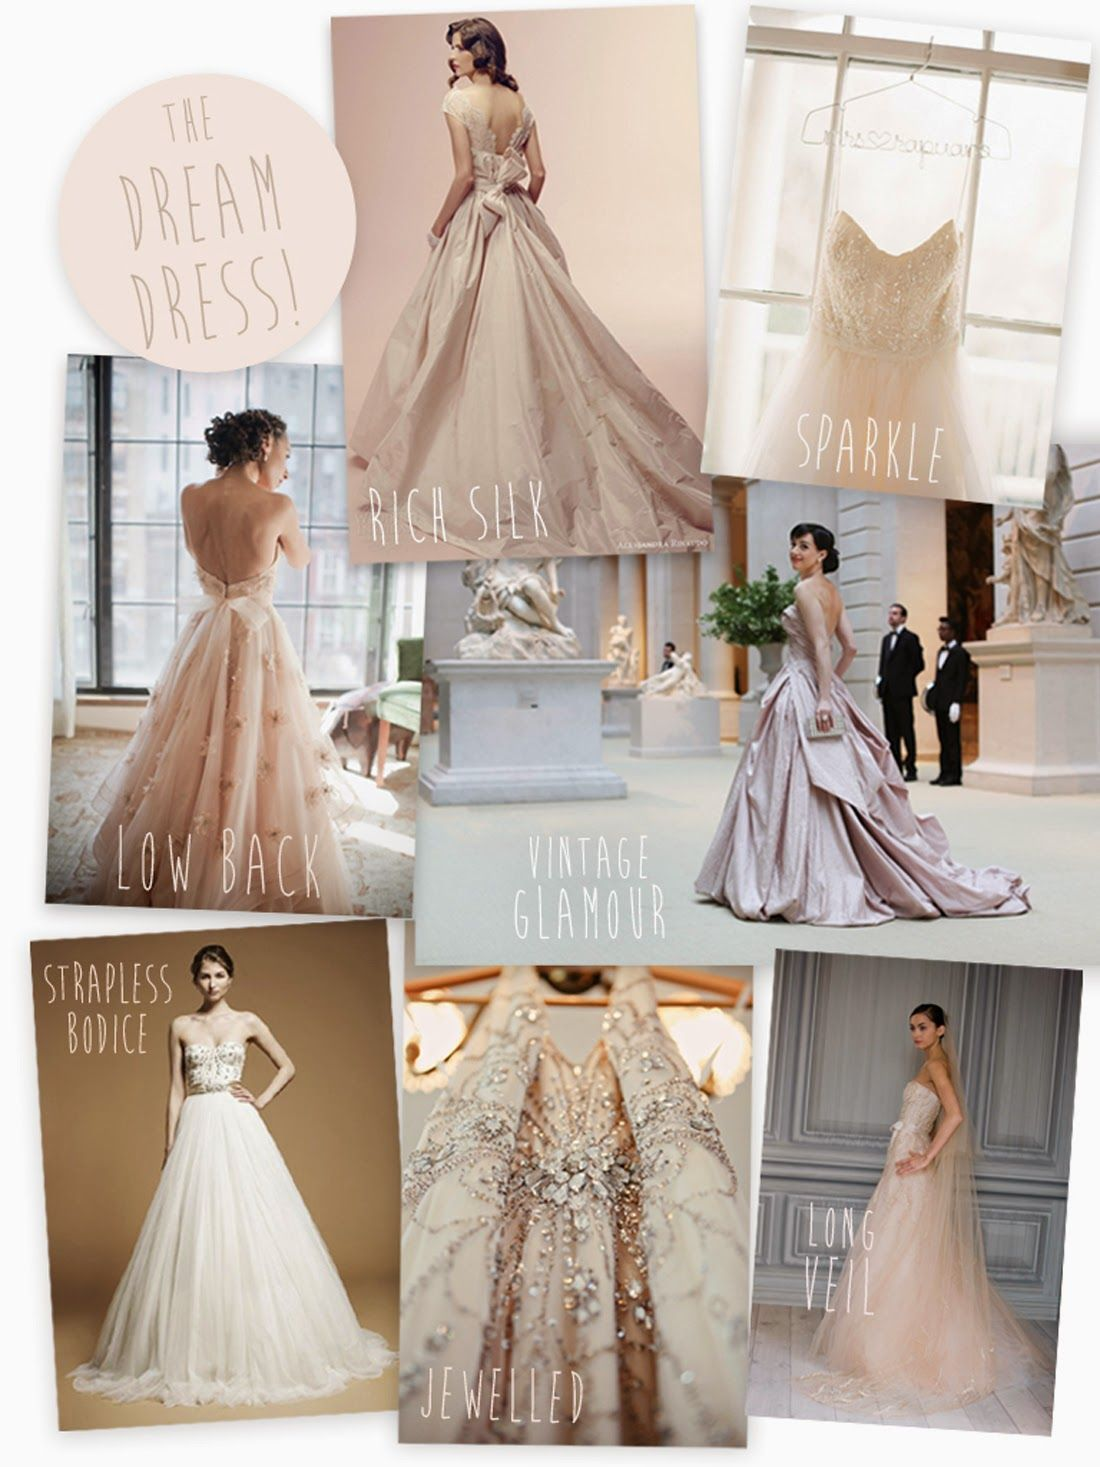 Knicker Elastic Fantastic How To Design Your Dream Wedding Dress By Picking Out The Key